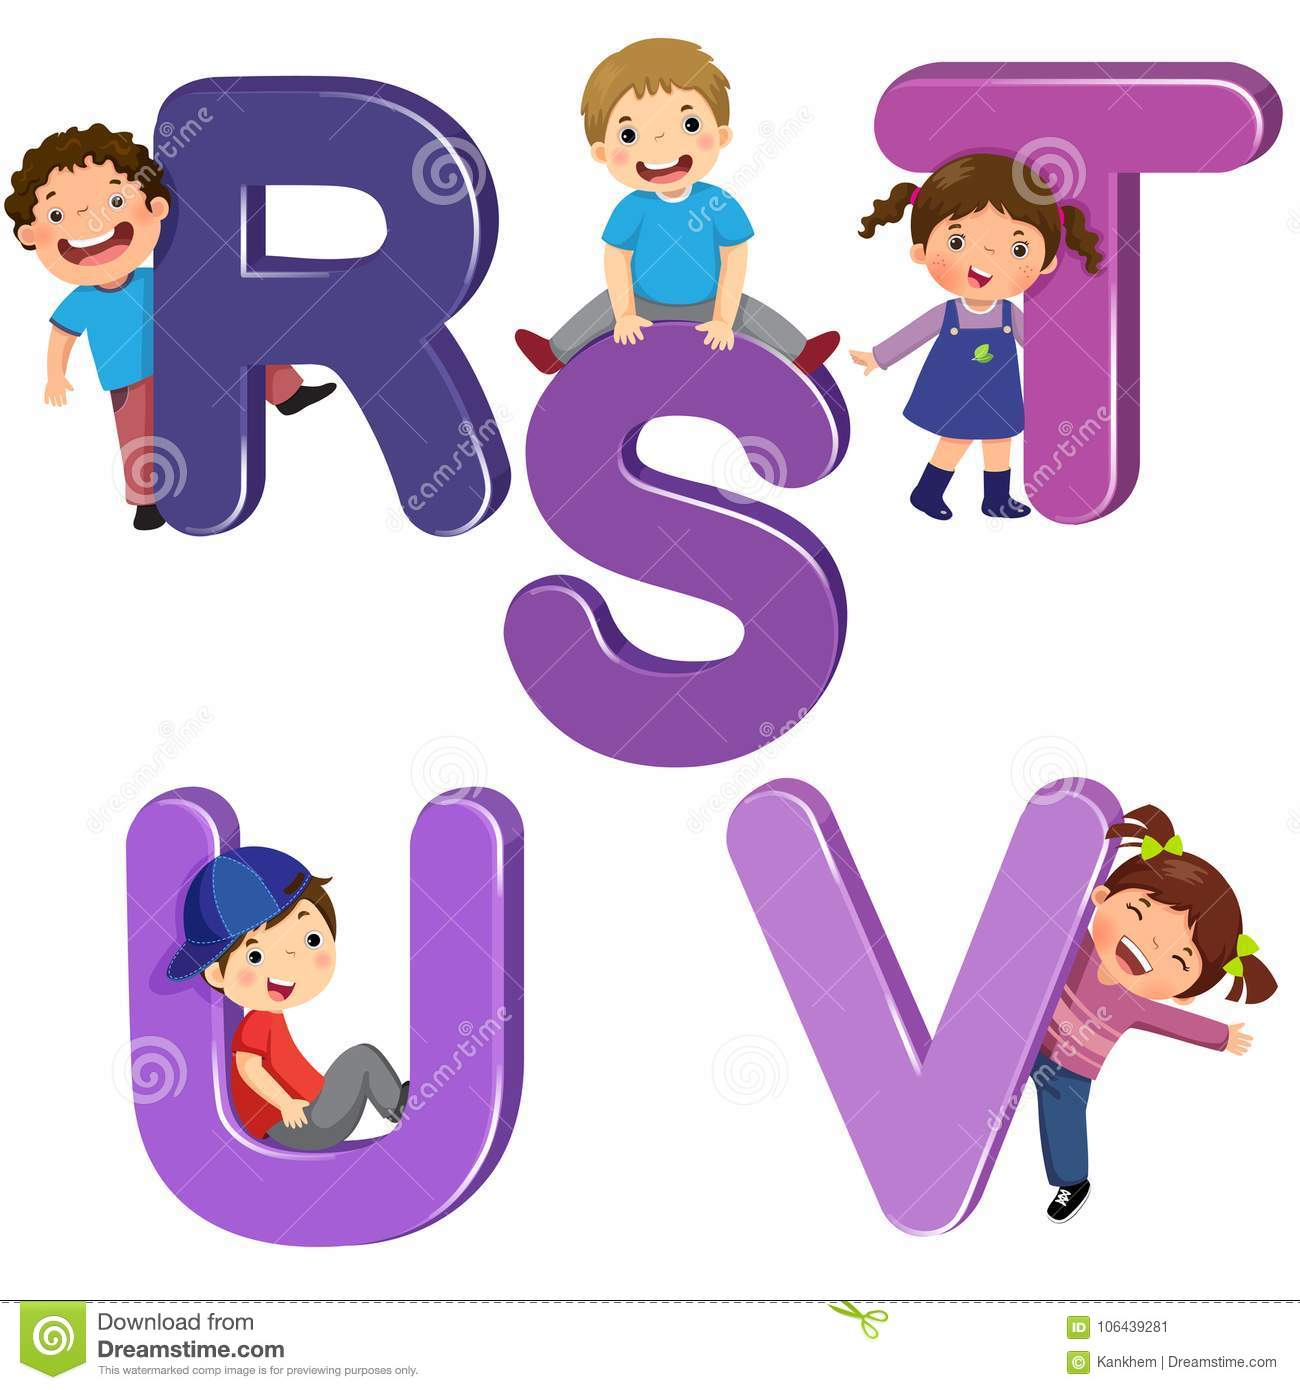 Cartoon kids with RSTUV letters